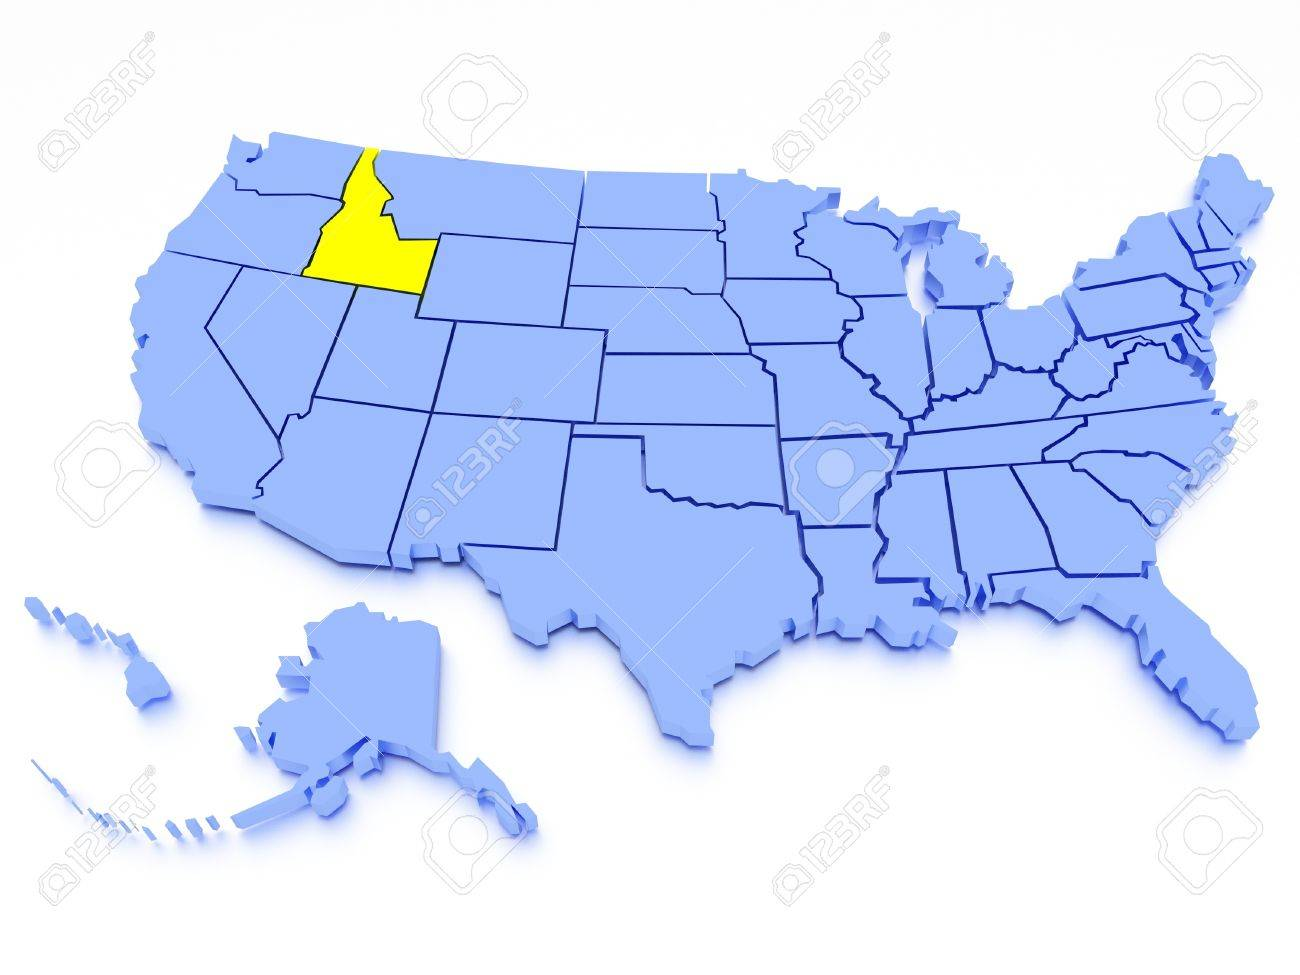 Where Is Idaho State Where Is Idaho Located In The US Map Idaho - Idaho on a us map